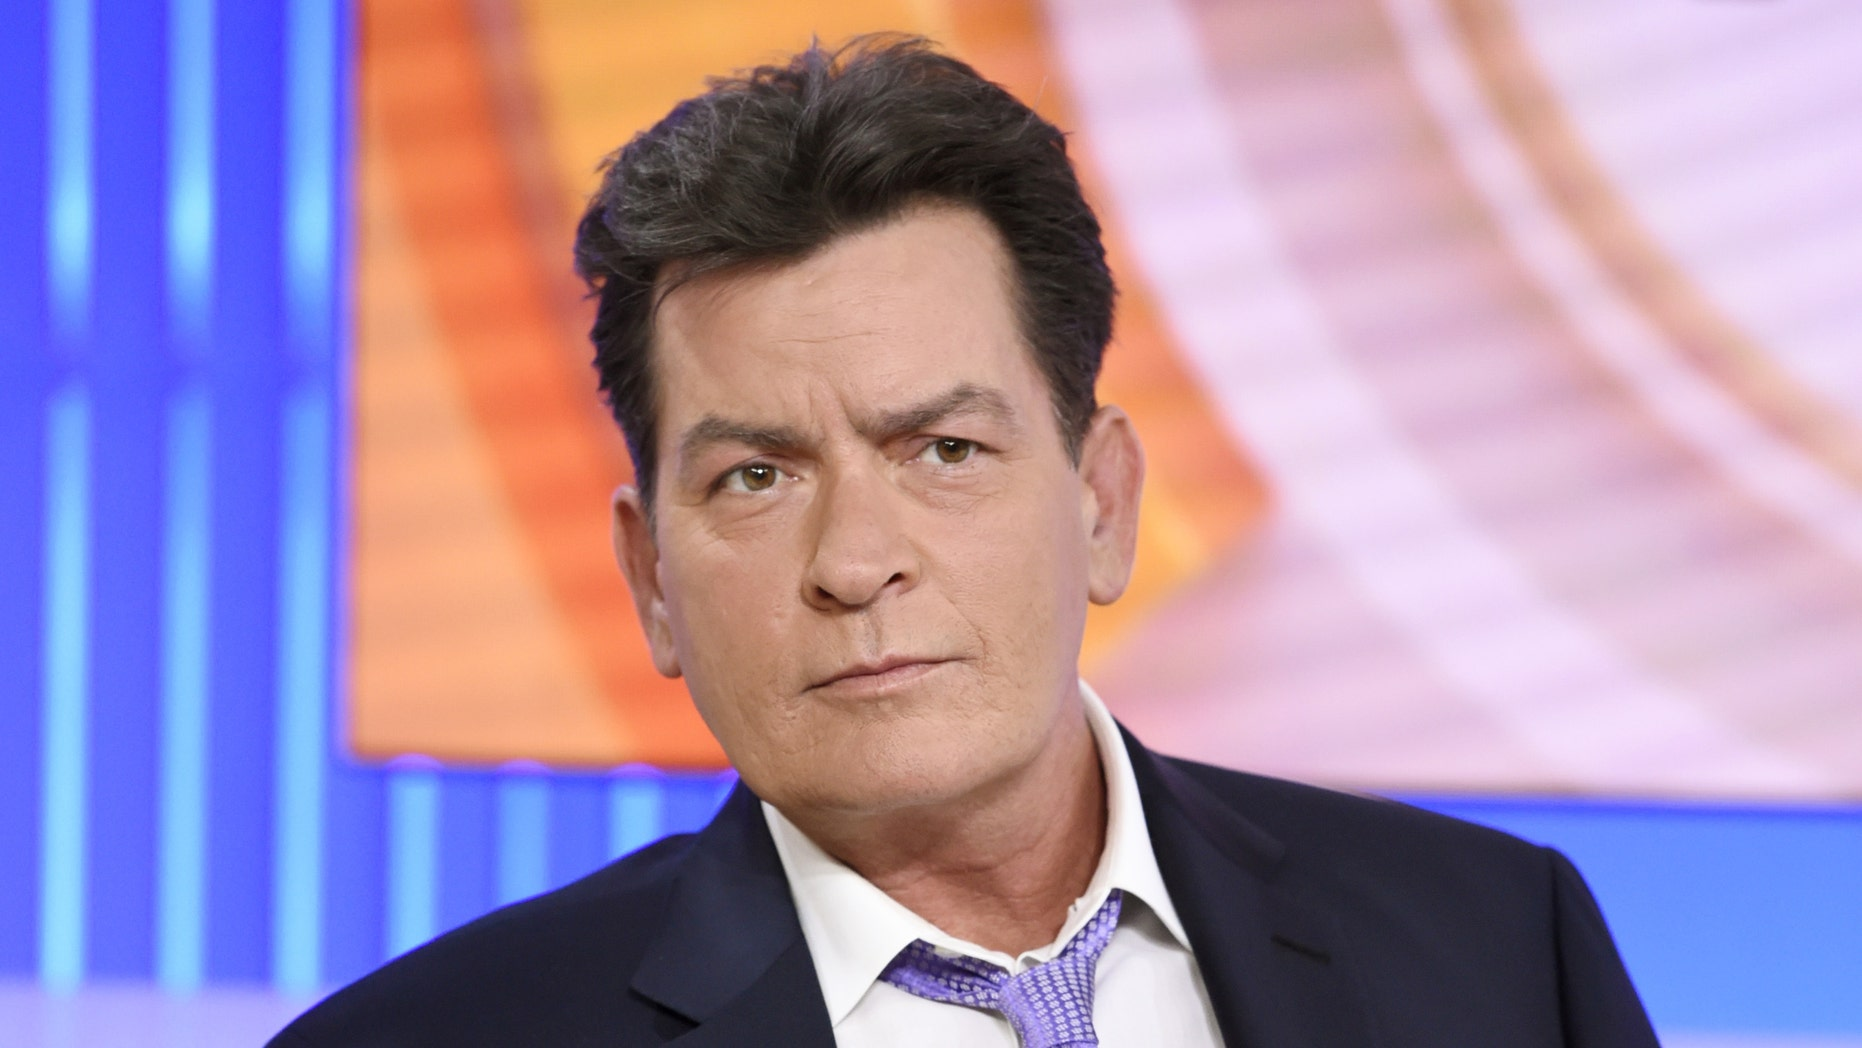 """Charlie Sheen during """"Today"""" interview on Nov. 17, 2015, when he revealed he is HIV positive."""